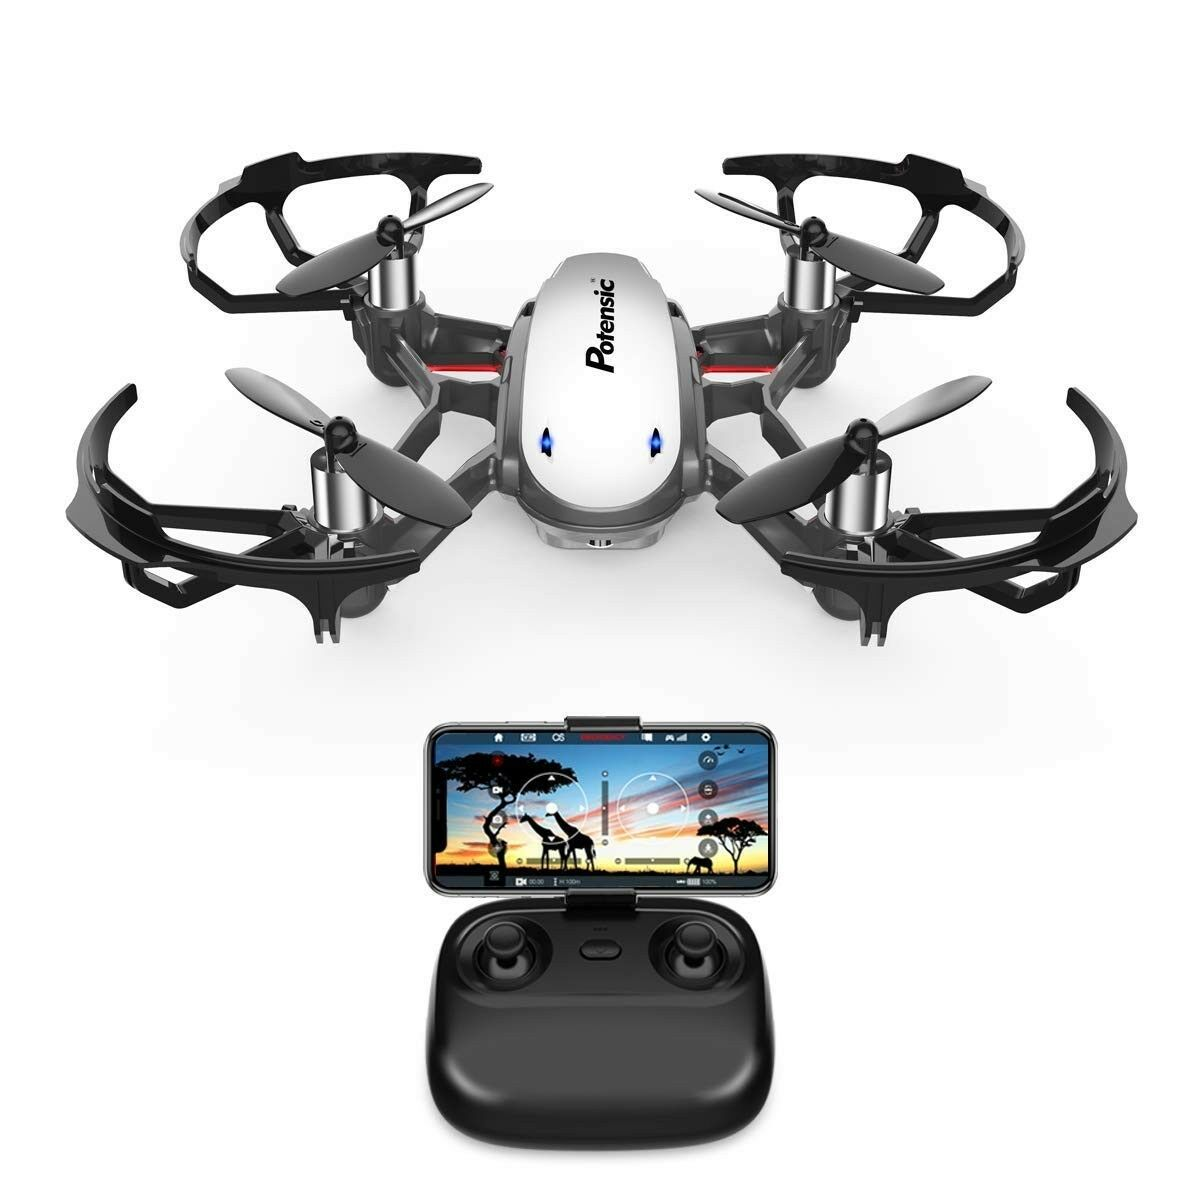 Potensic FPV RC Drone with Wi-Fi Camera Live Video Feed 2.4GHz 6-Axis Gyro Quad